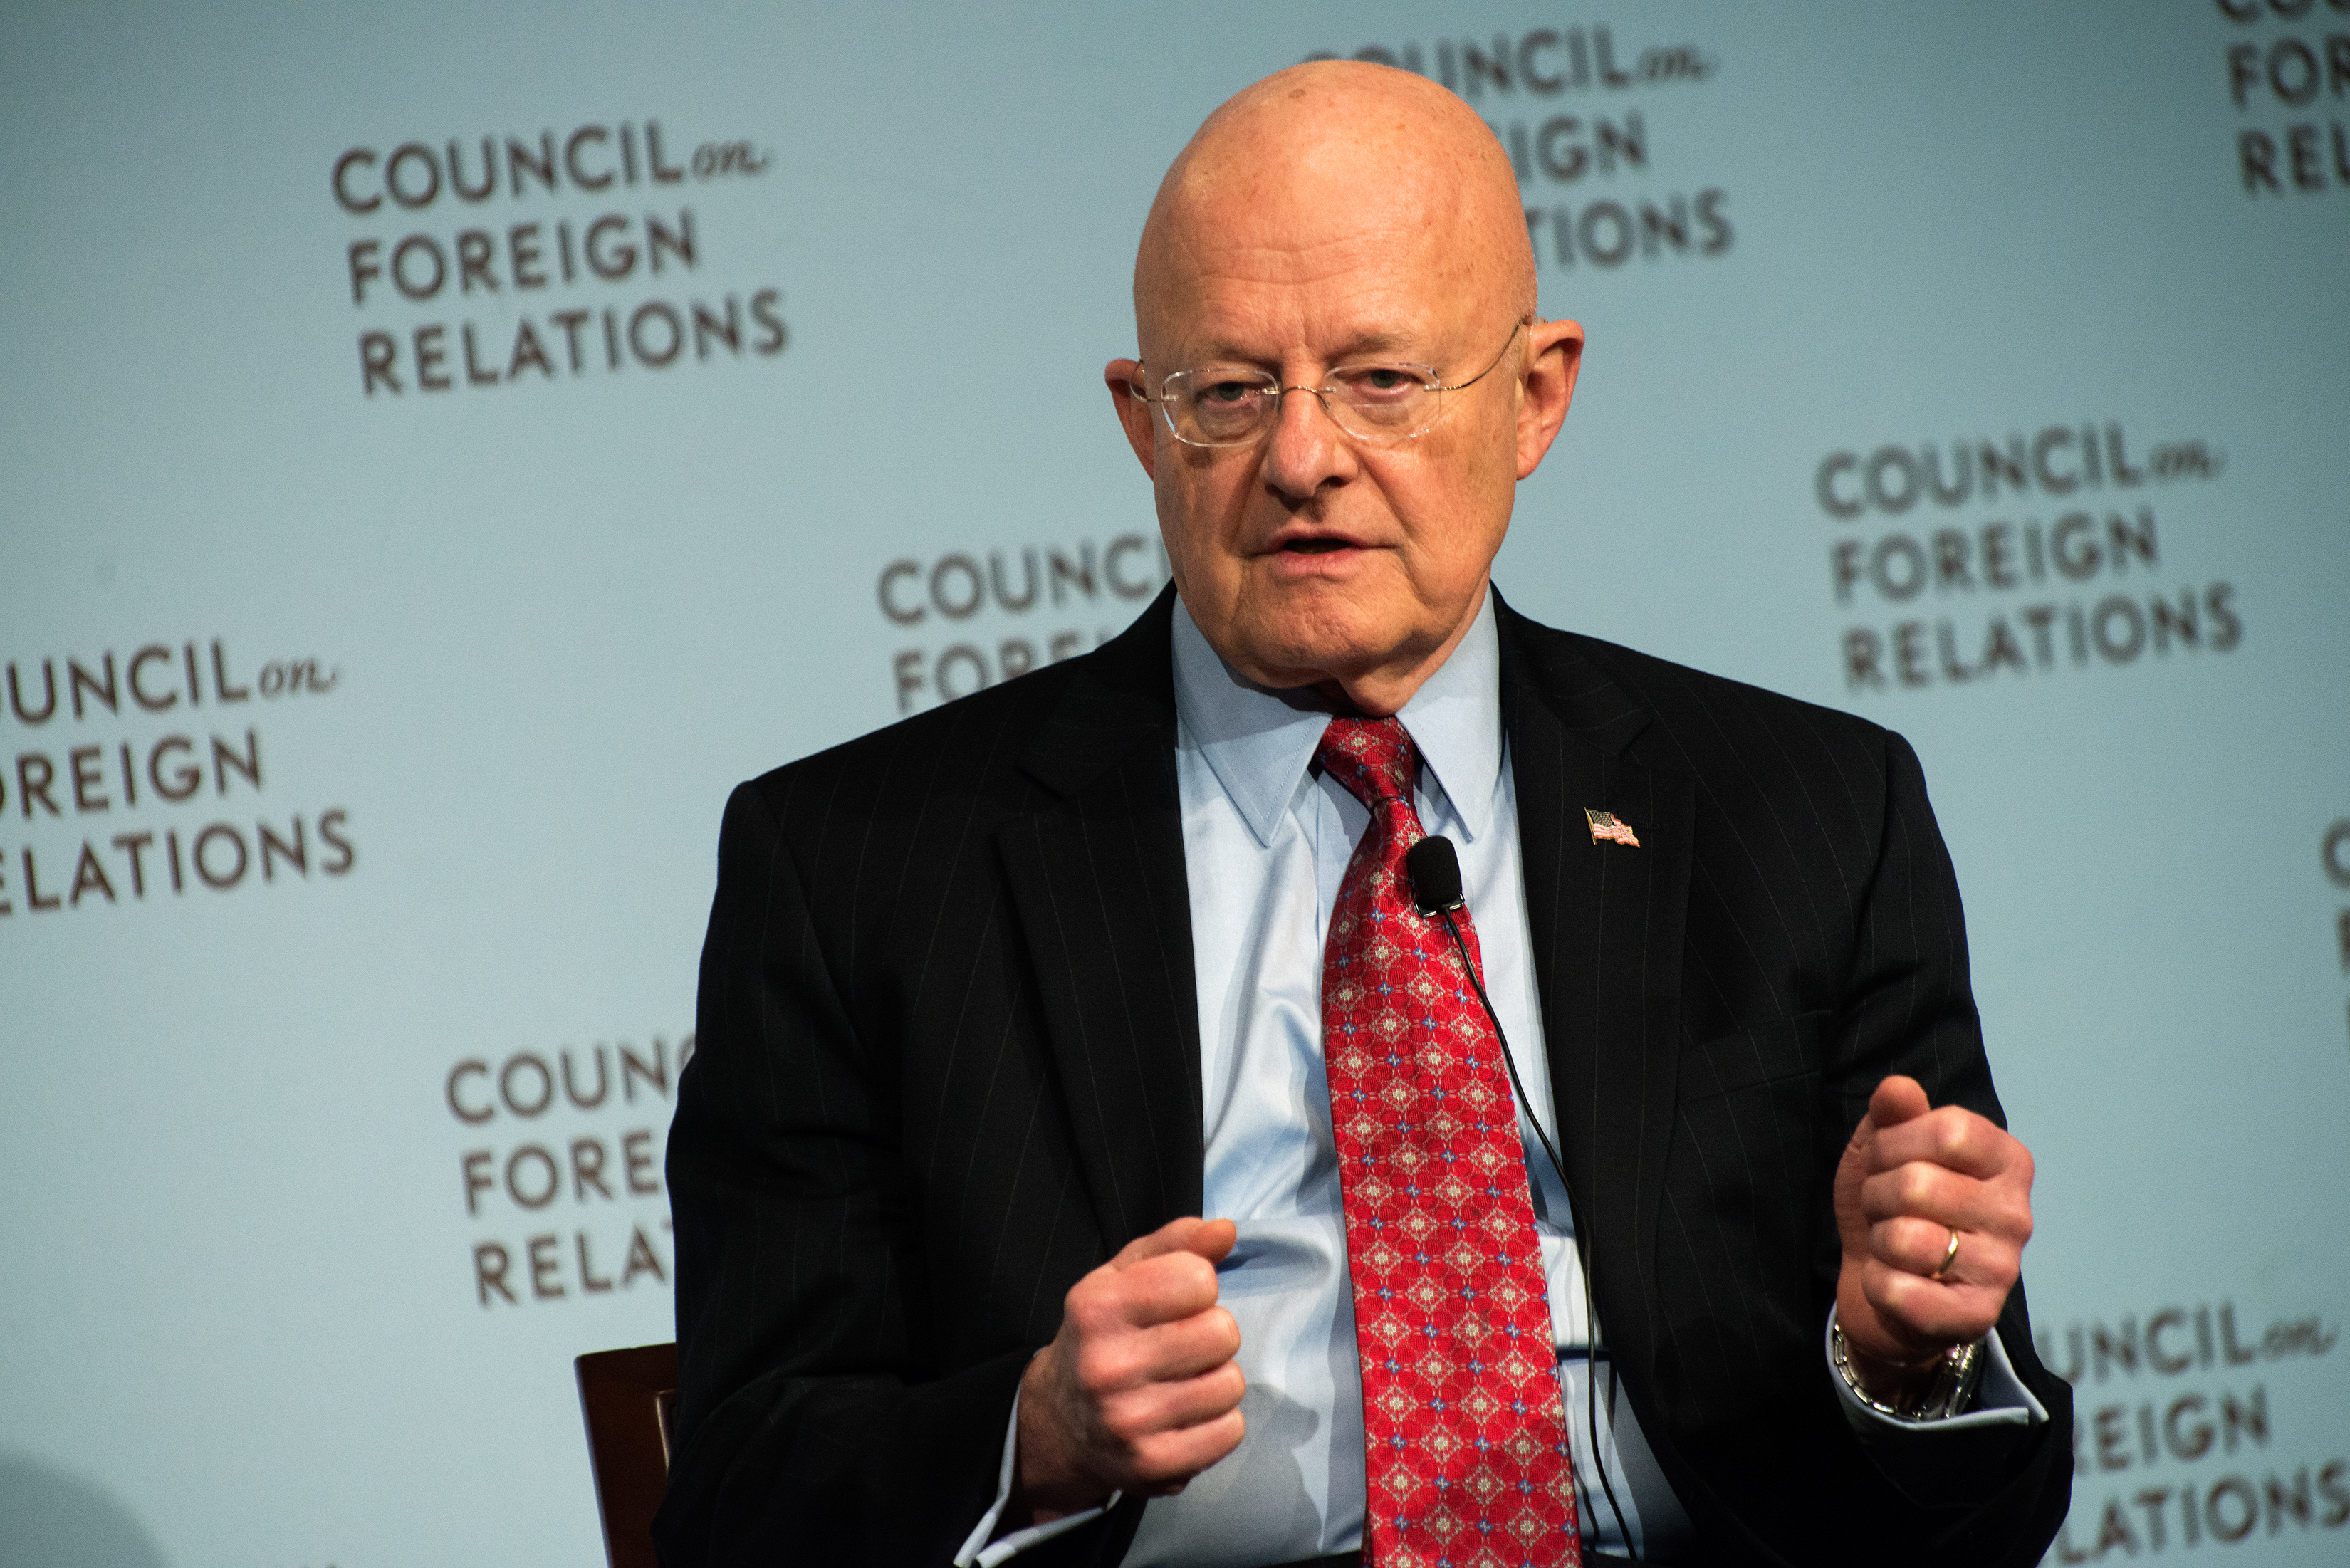 Director of National Intelligence James Clapper speaks at the Council on Foreign Relations on March 2, 2015 in New York City.